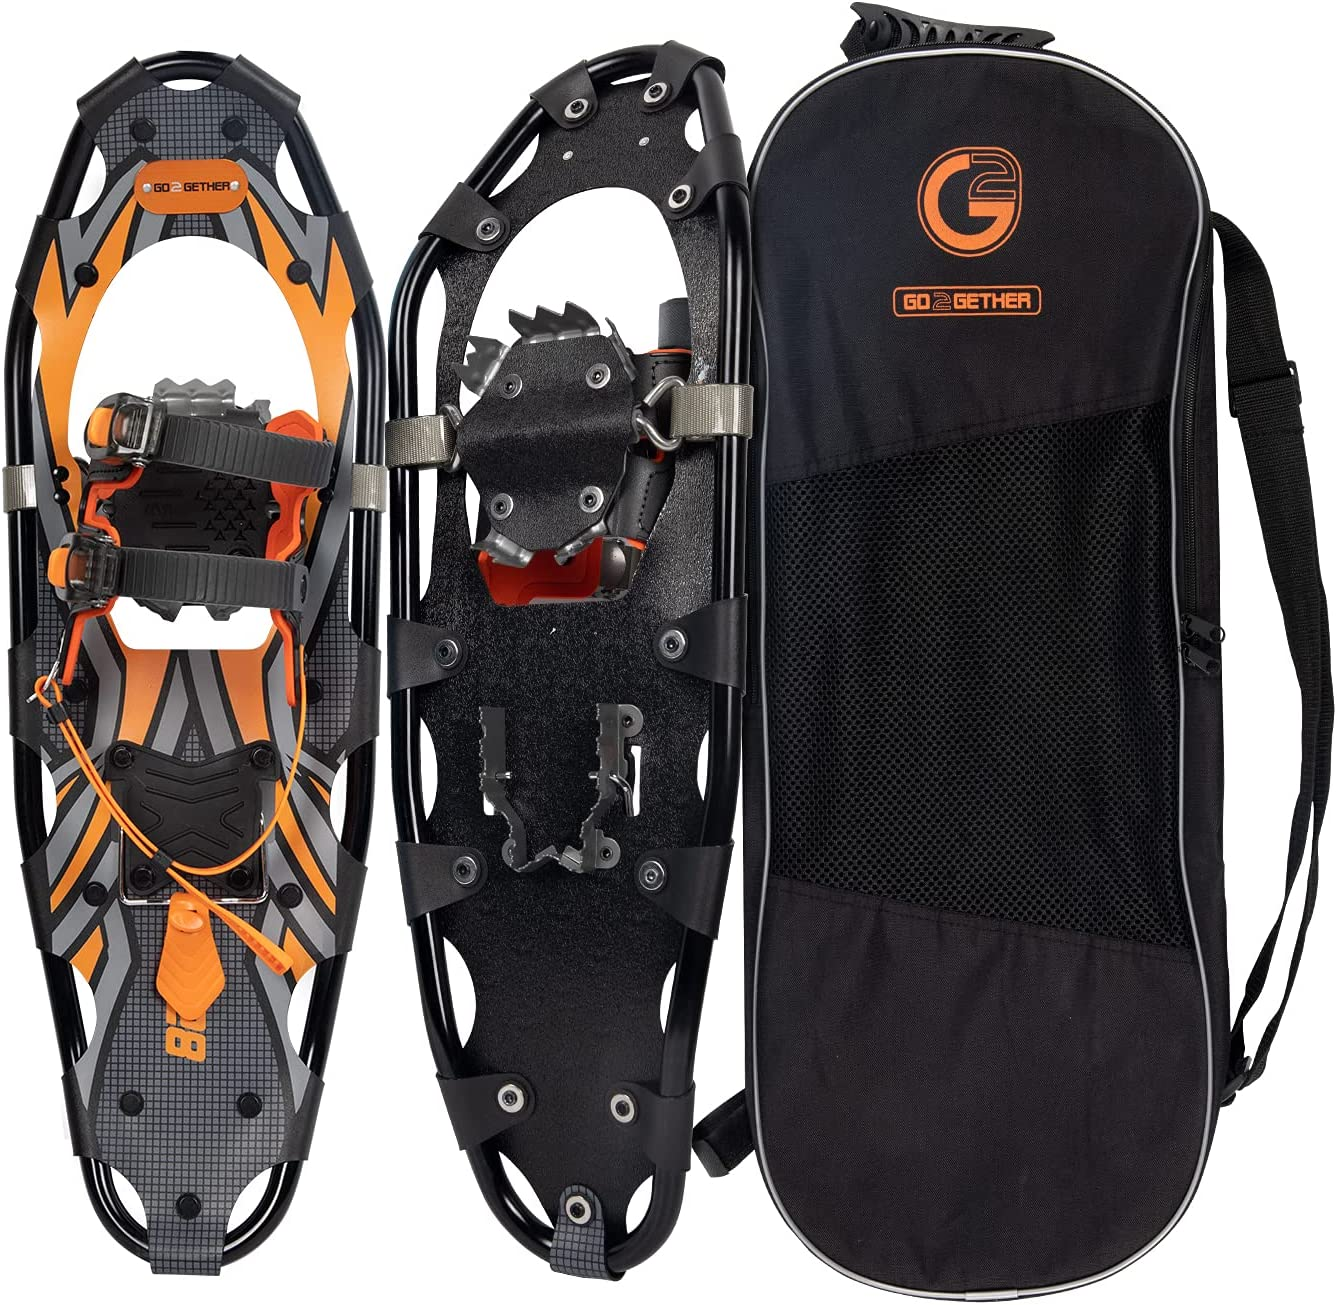 21/25/30 Inches Light Weight Snowshoes for Women Men Youth Kids,